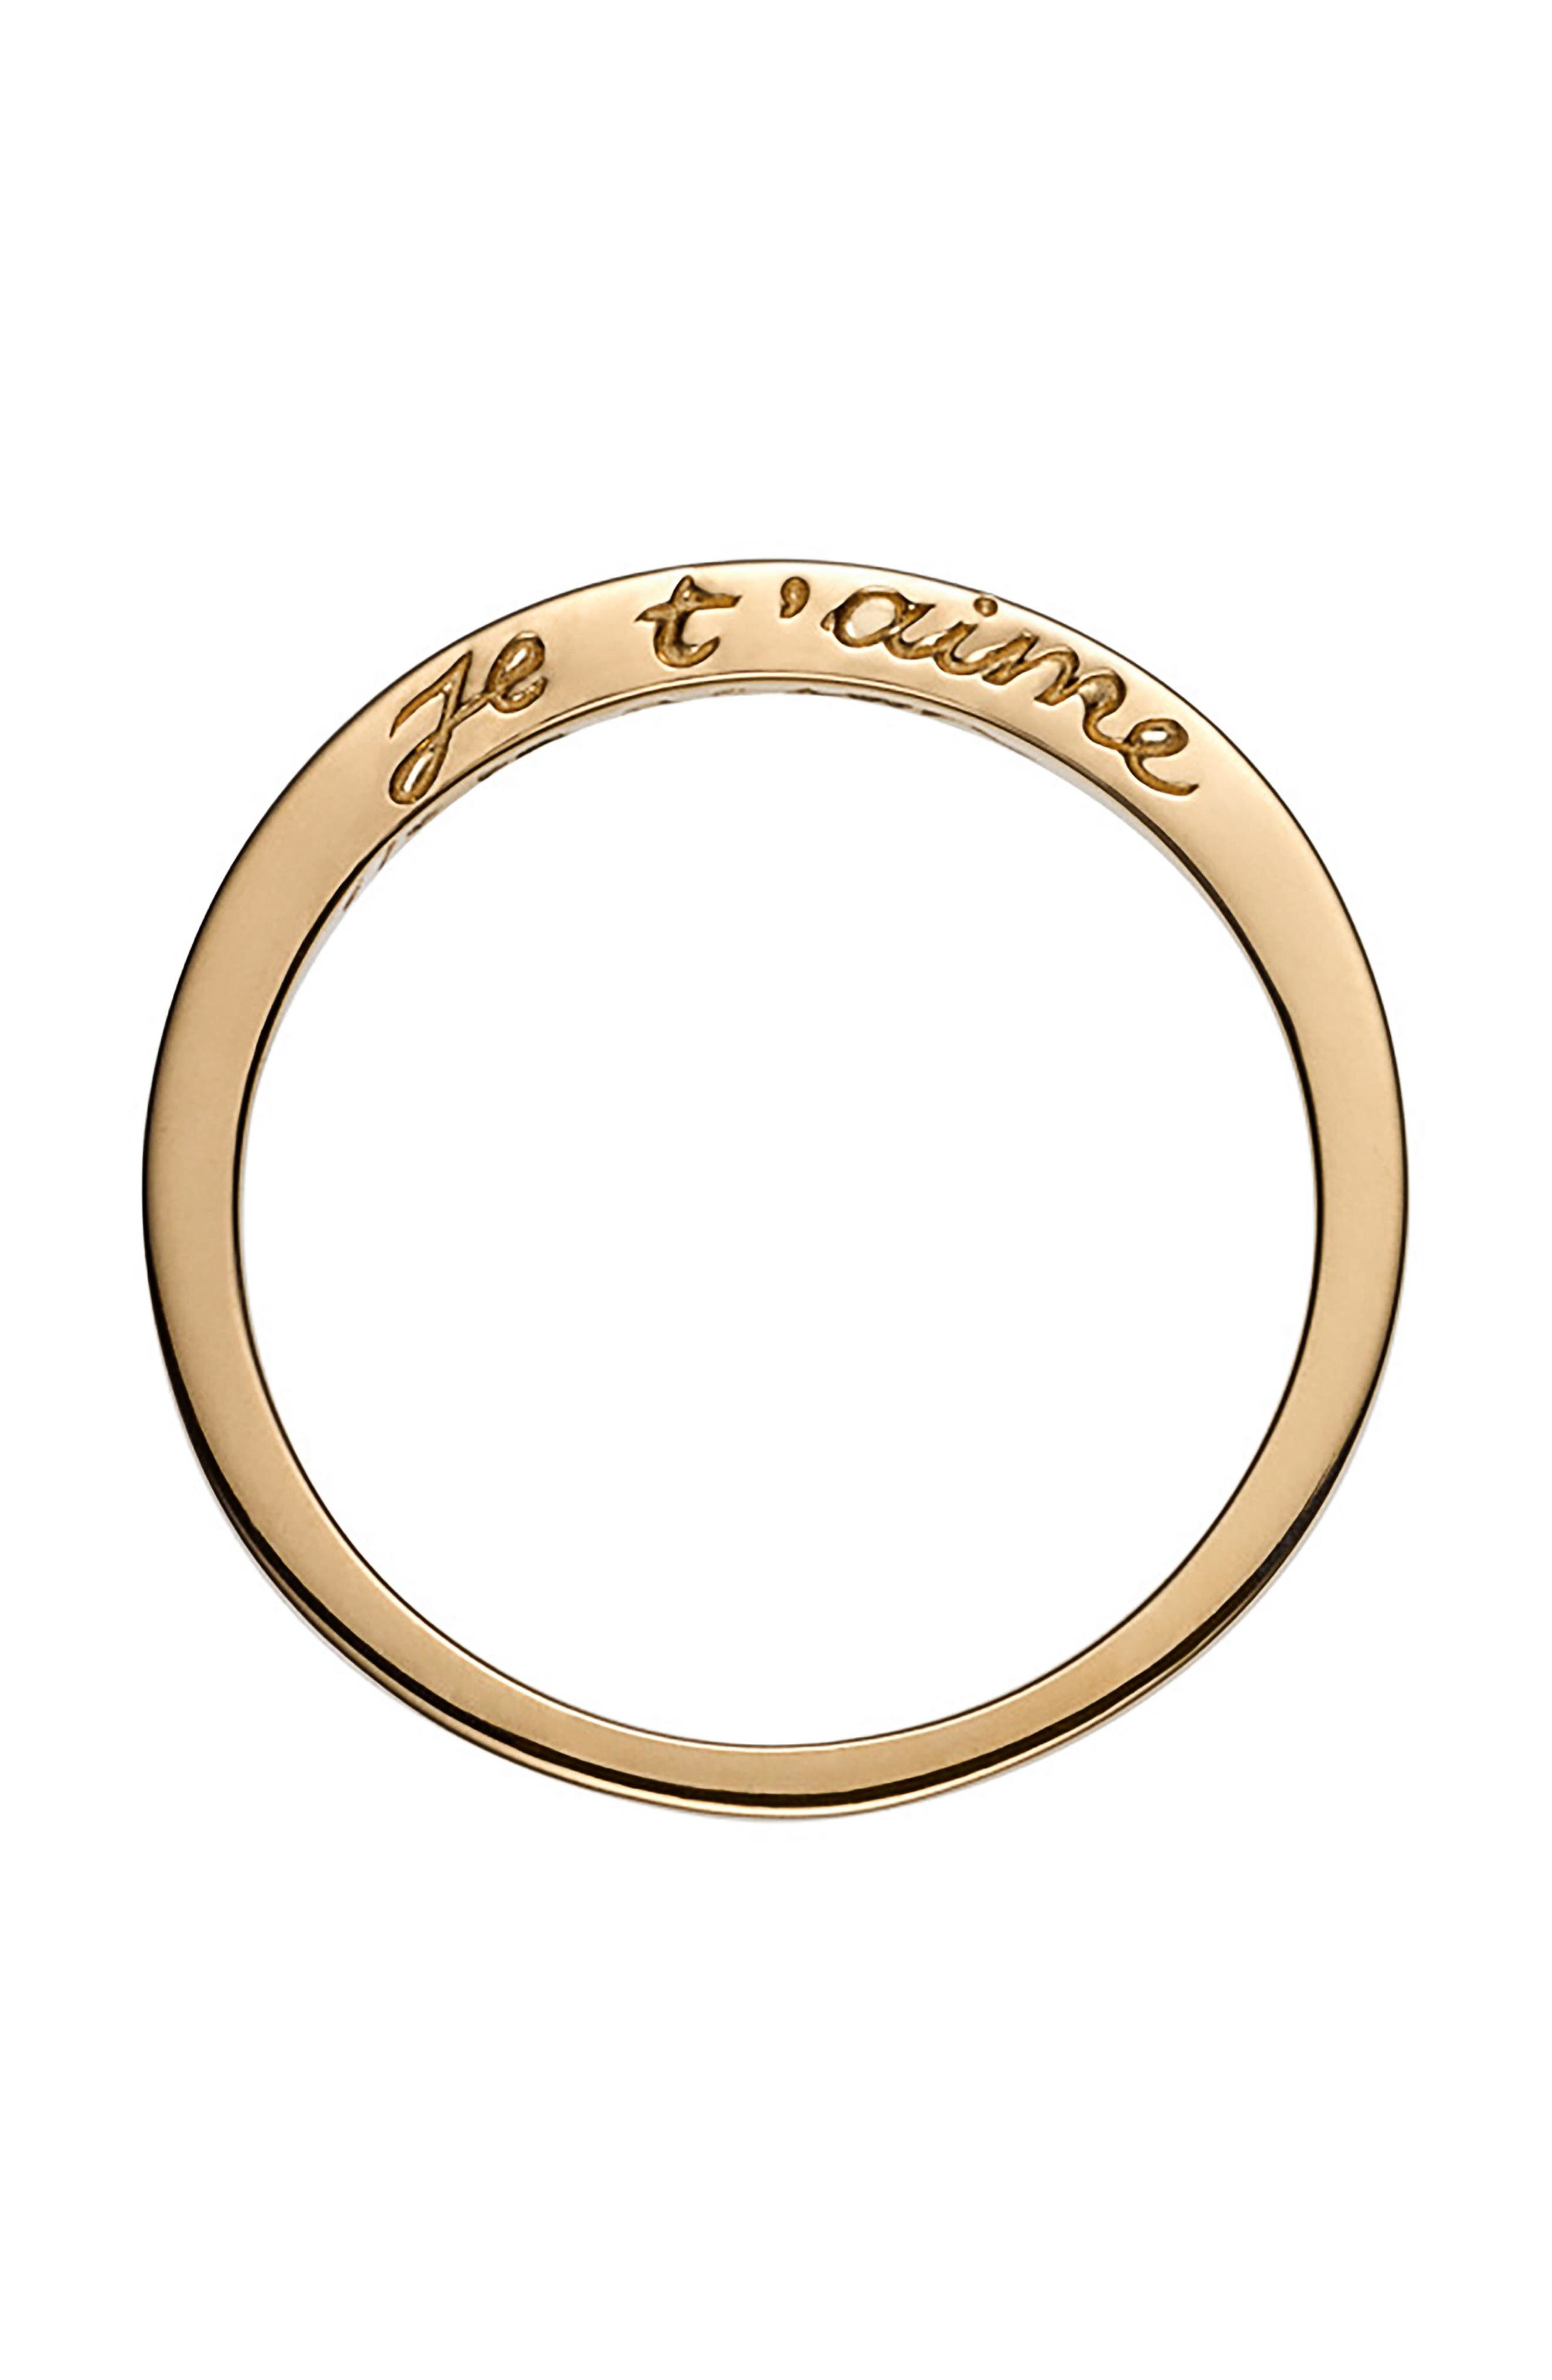 Je T'aime Side Script Stackable Ring,                         Main,                         color, YELLOW GOLD